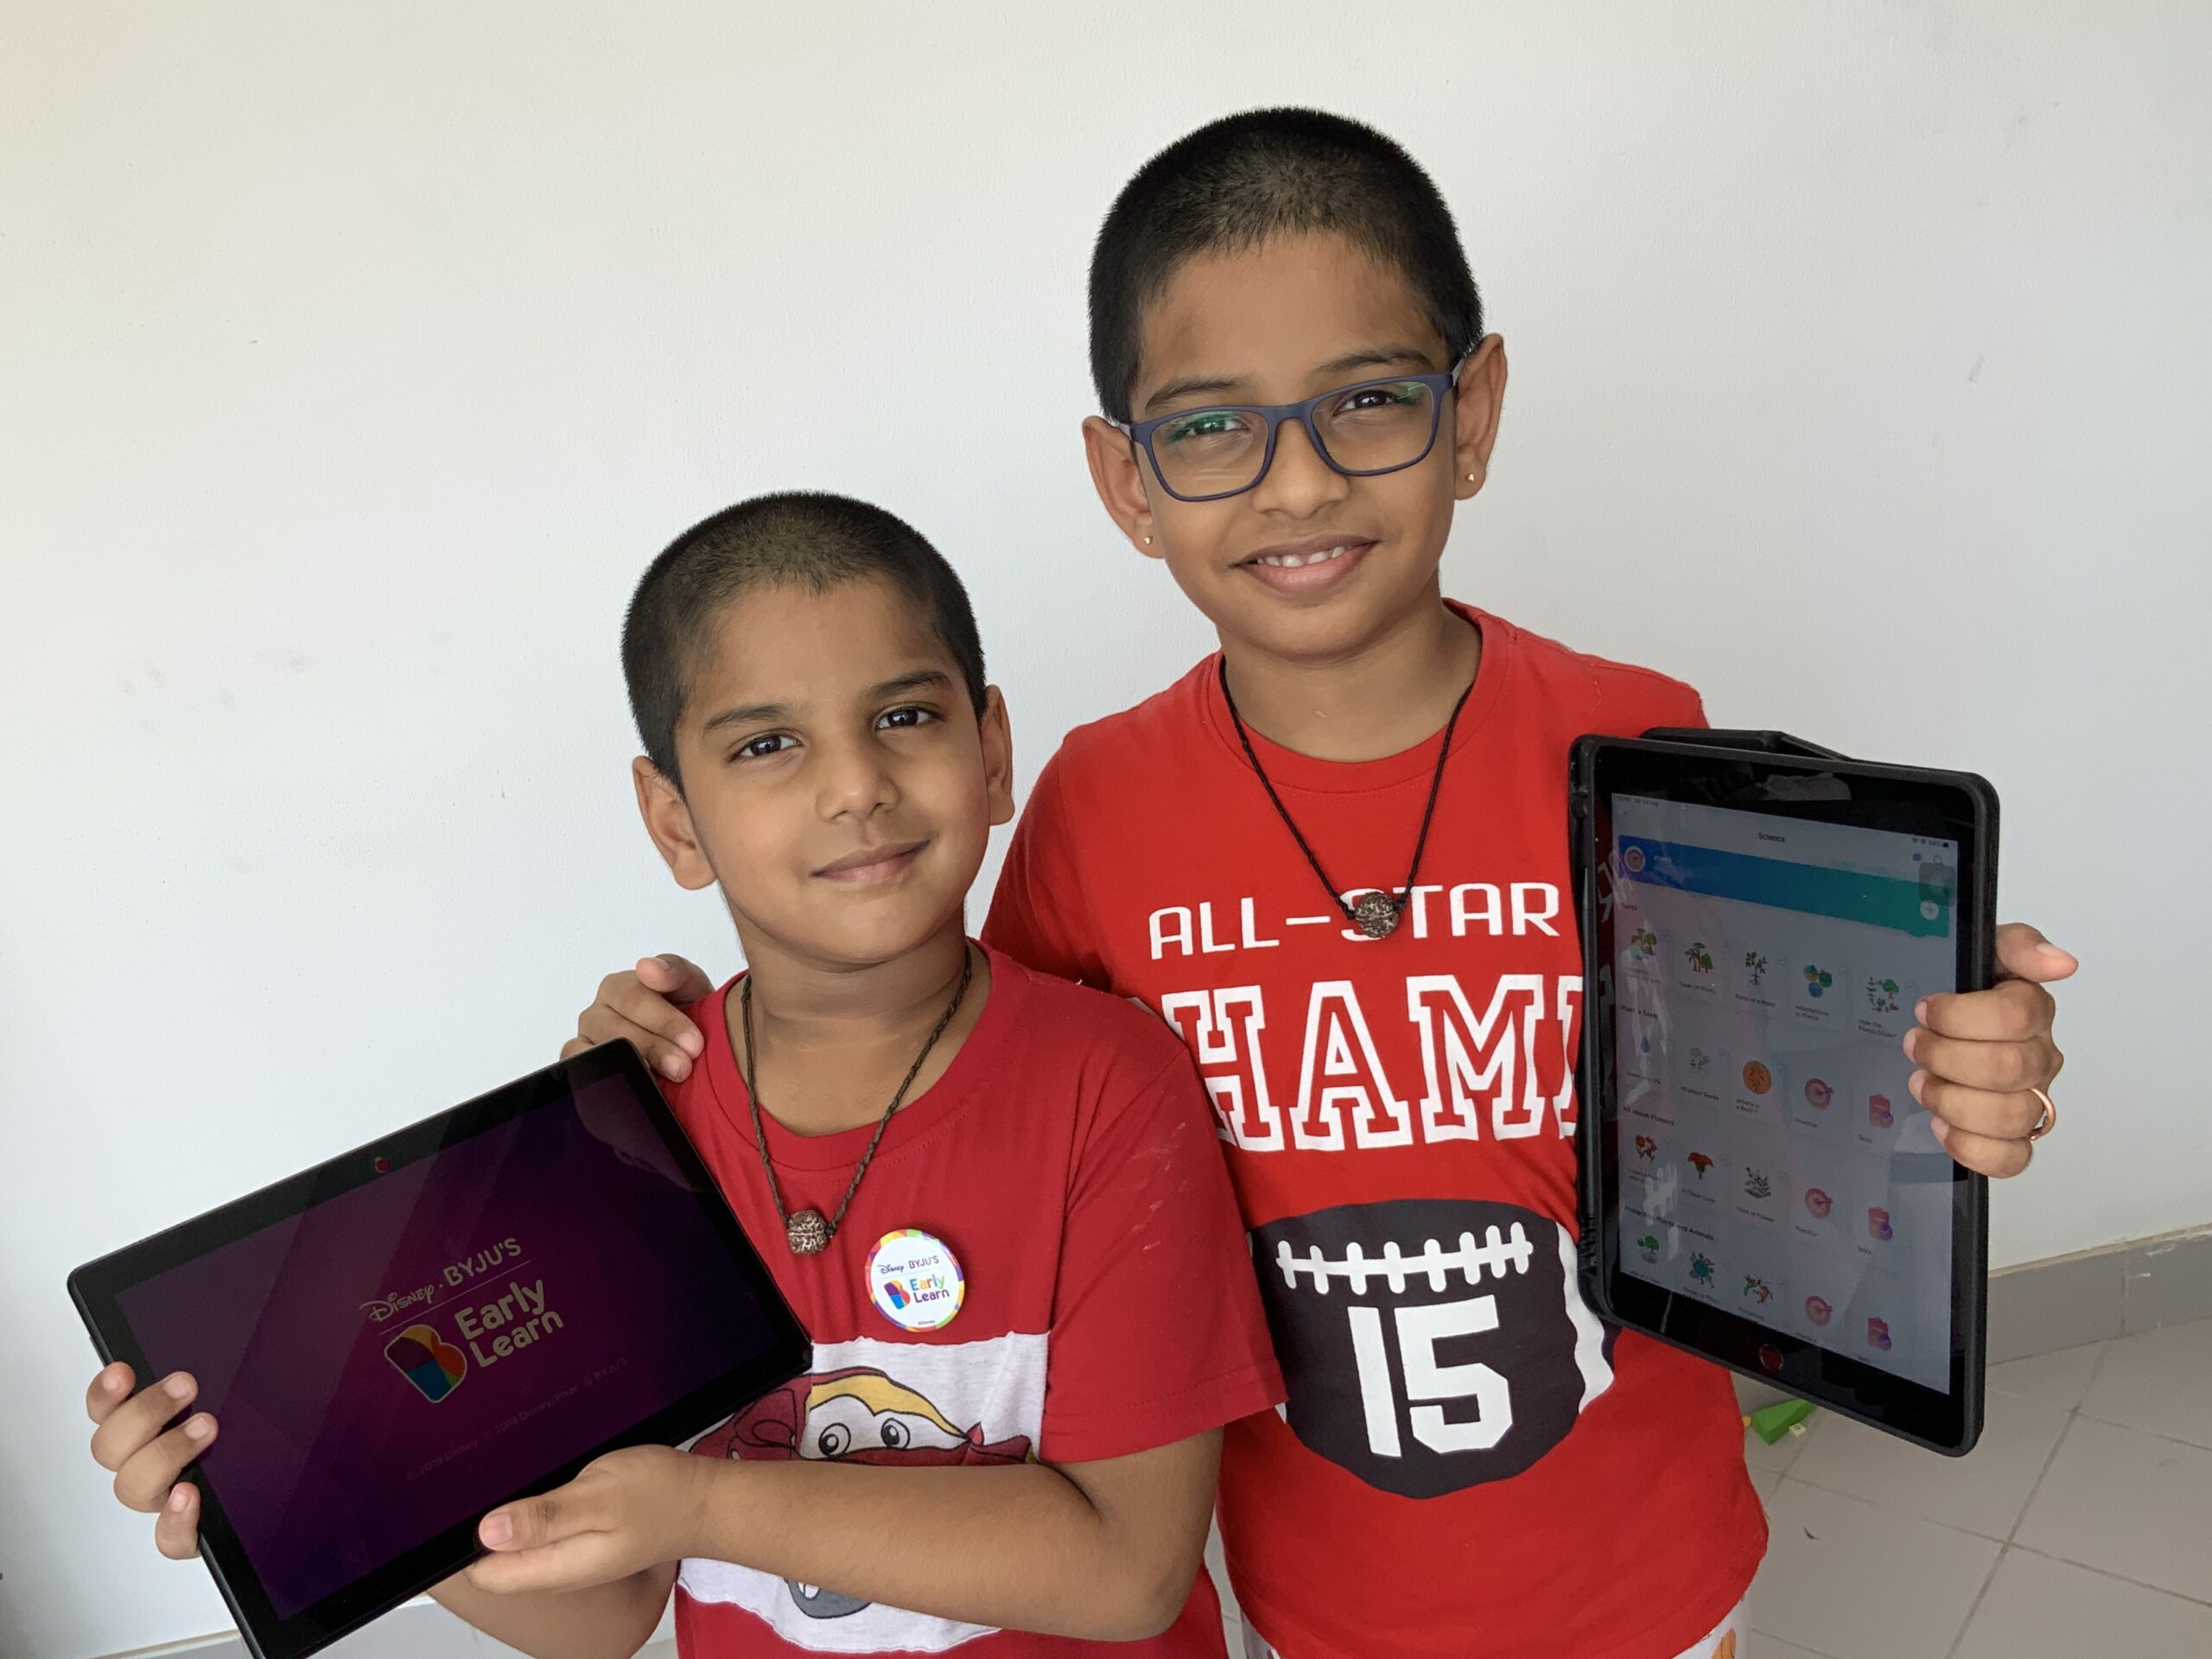 The Karthik brothers, Kulesha (6 years) and Mrithyunjai (9 years) loves studying form BYJU'S - The Learning App